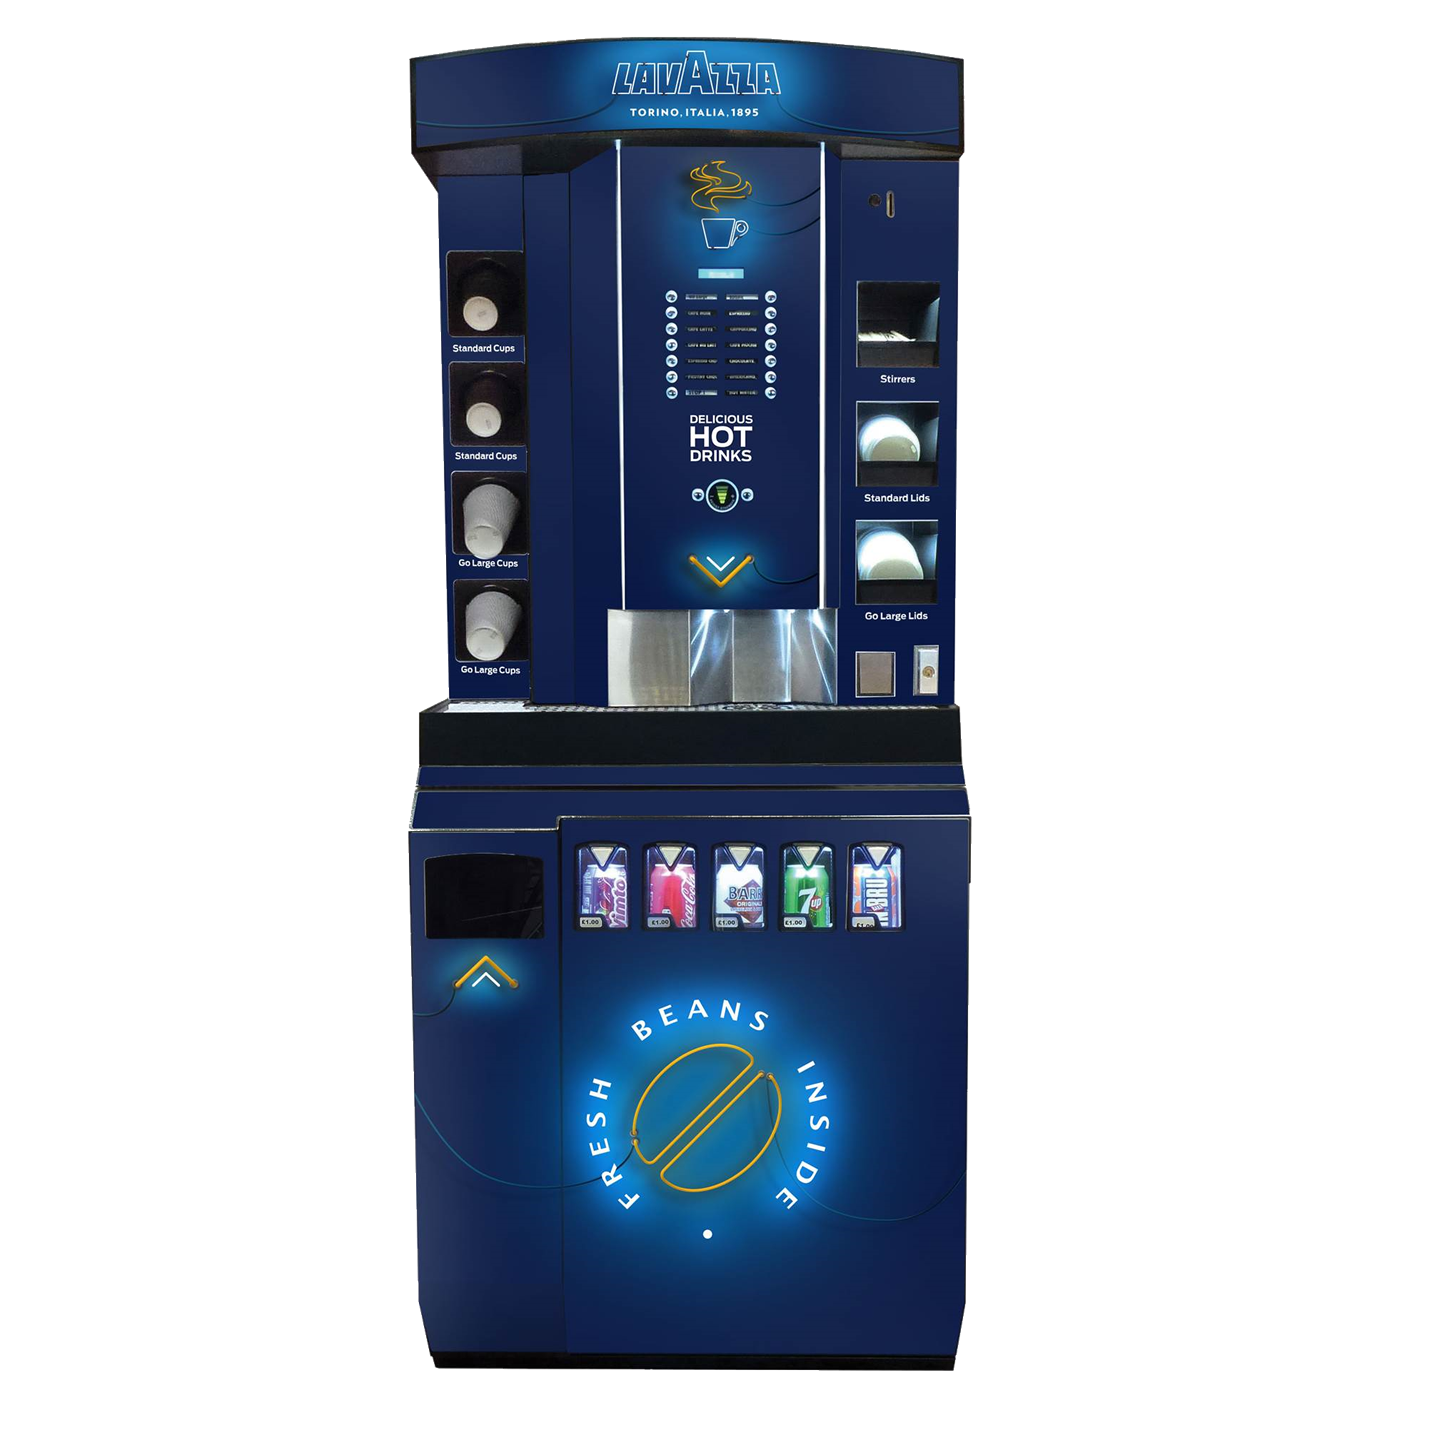 LavazzaBeans and Cold drink dispense Tower